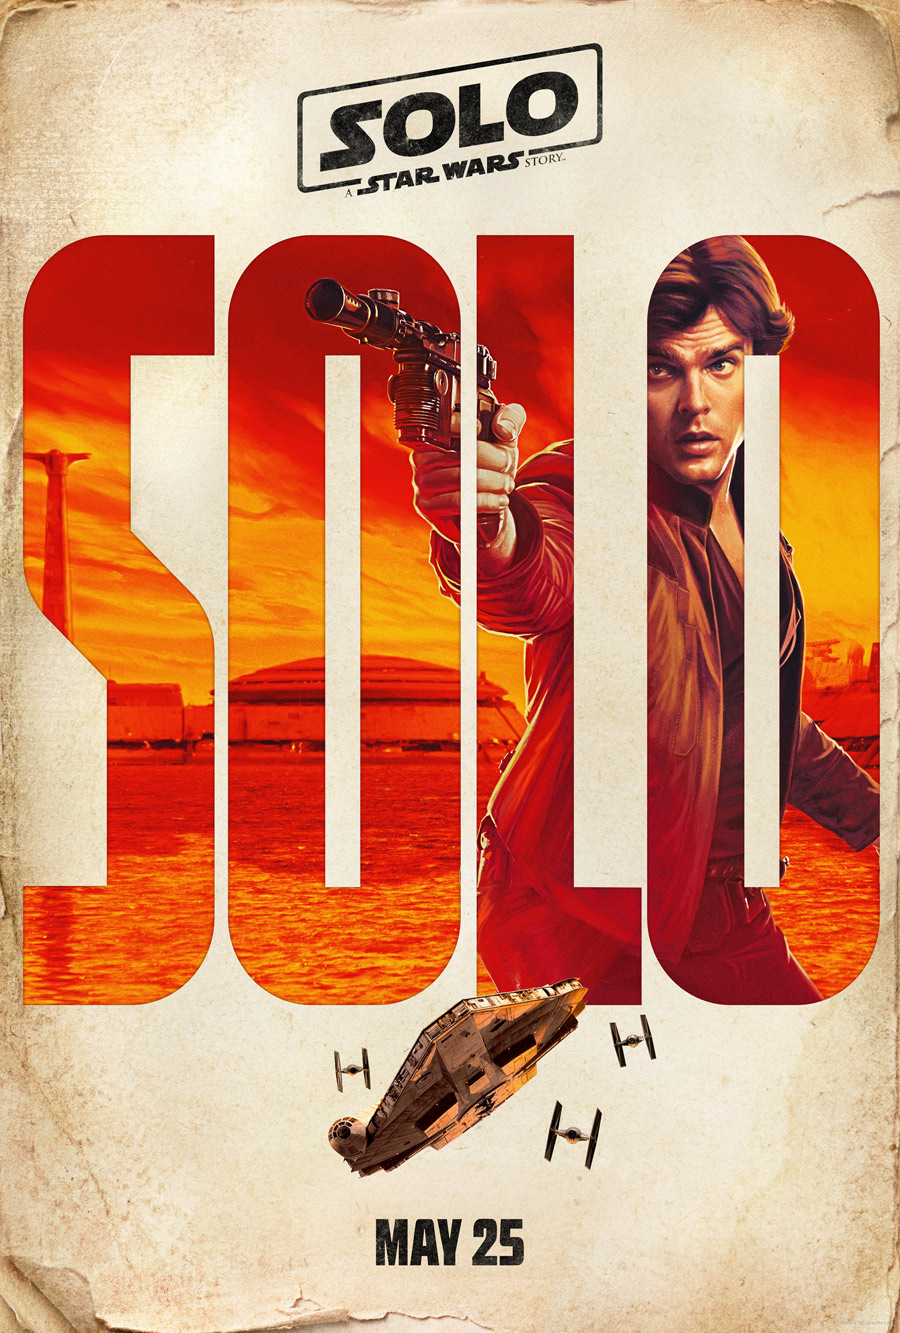 A promotion poster for Solo: A Star Wars Story